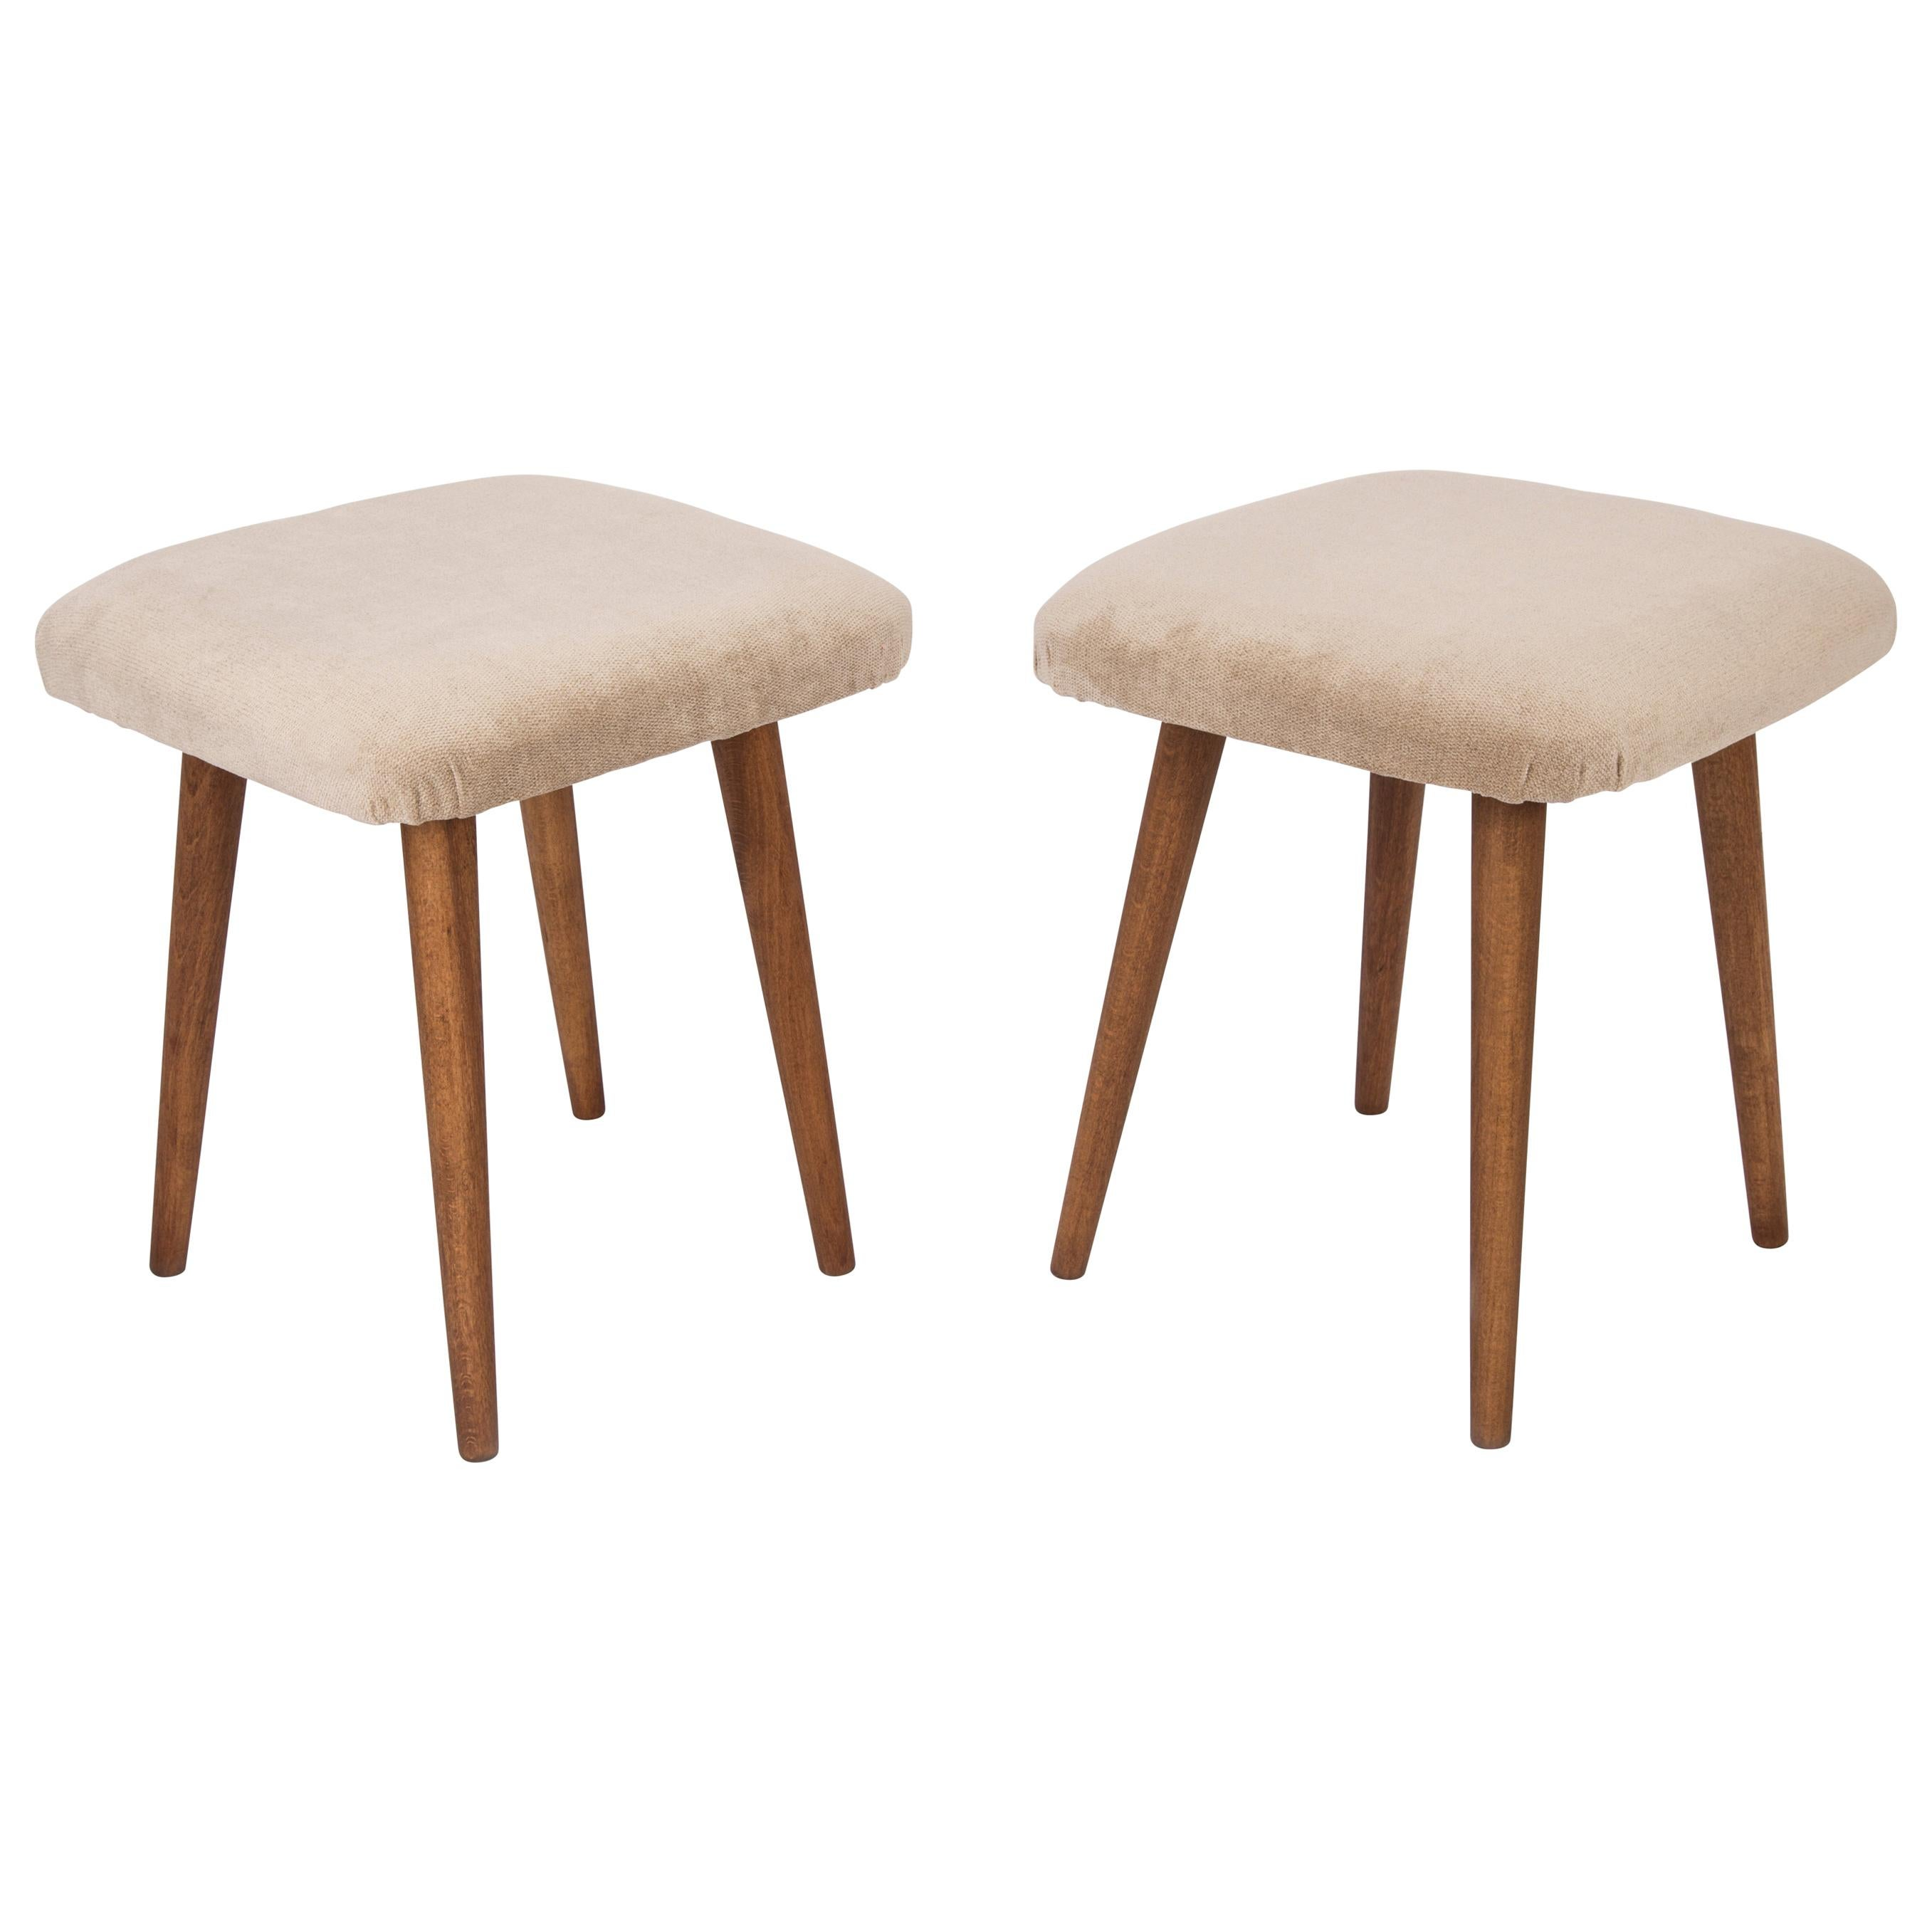 Pair of Beige Stools, 1960s